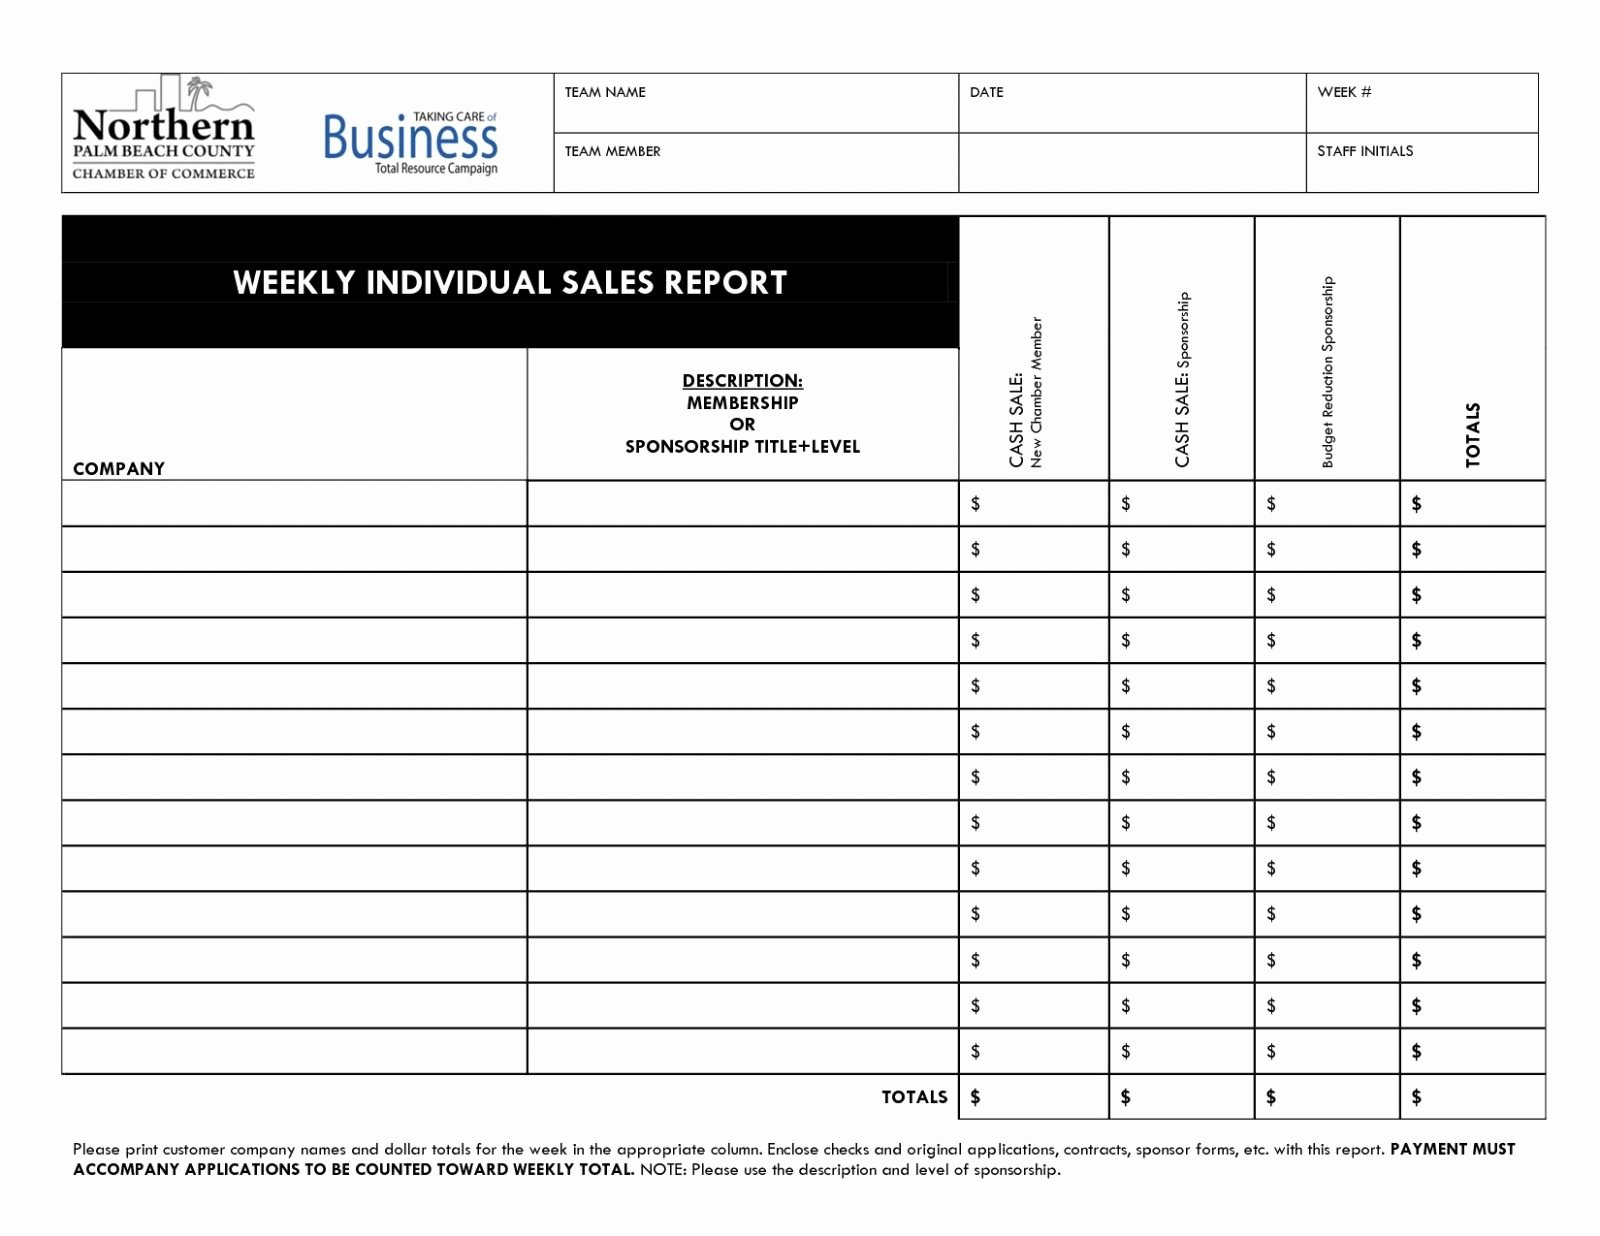 Sales Call Reporting Template Elegant Daily Sales Call Report Template